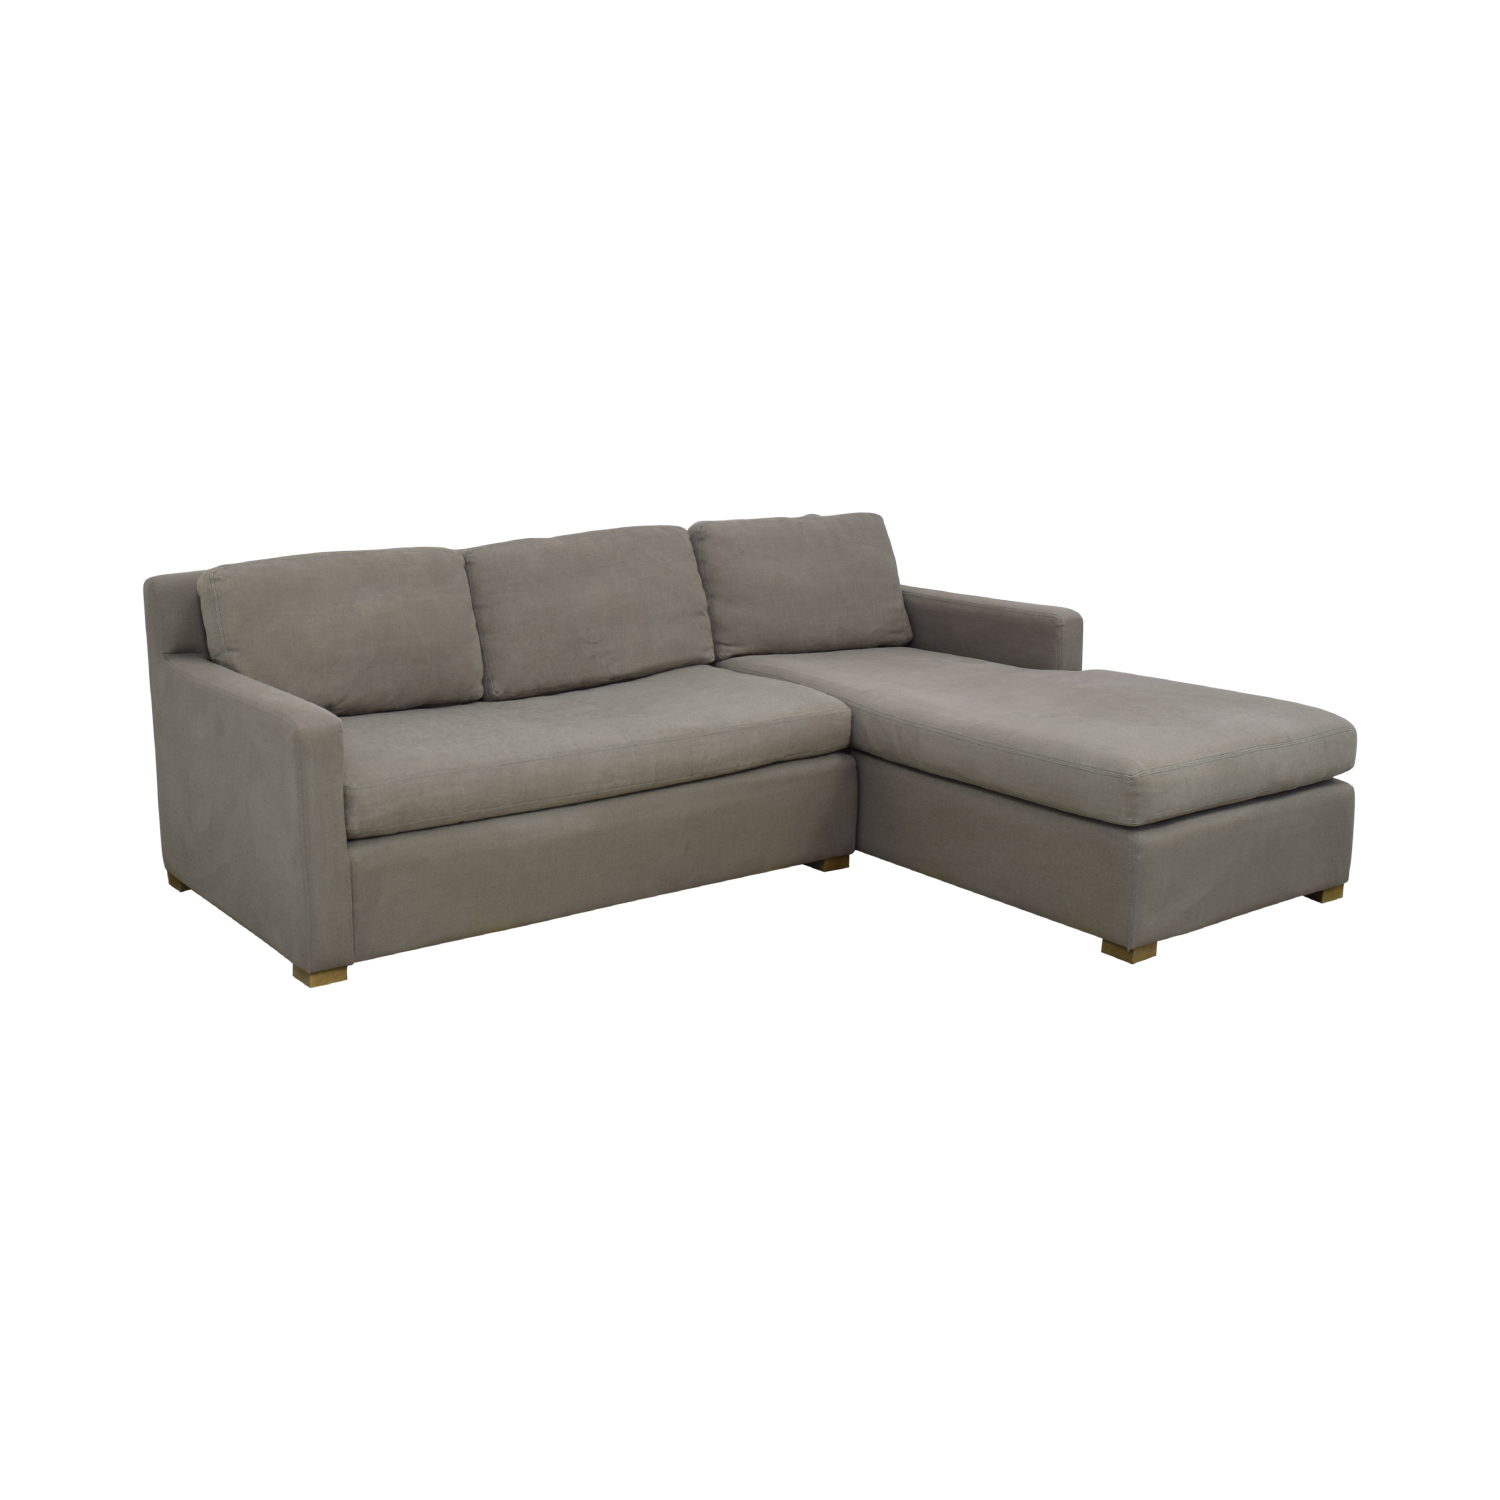 Restoration Hardware Restoration Hardware Belgian Track Arm Right-Arm Chaise Sectional used